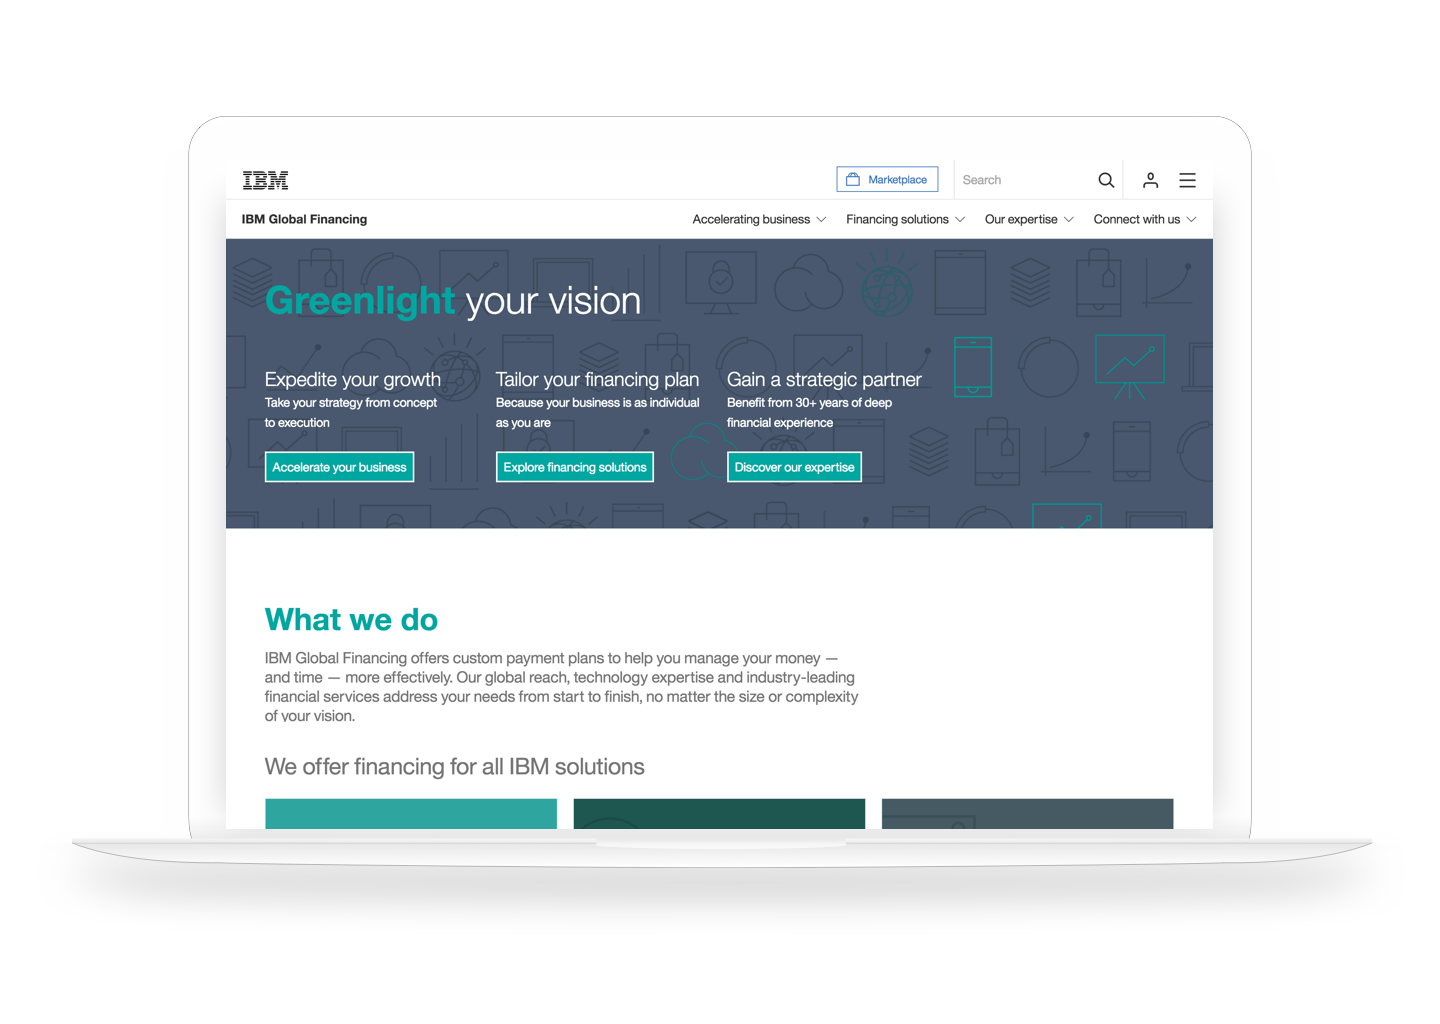 IBM Global Financing